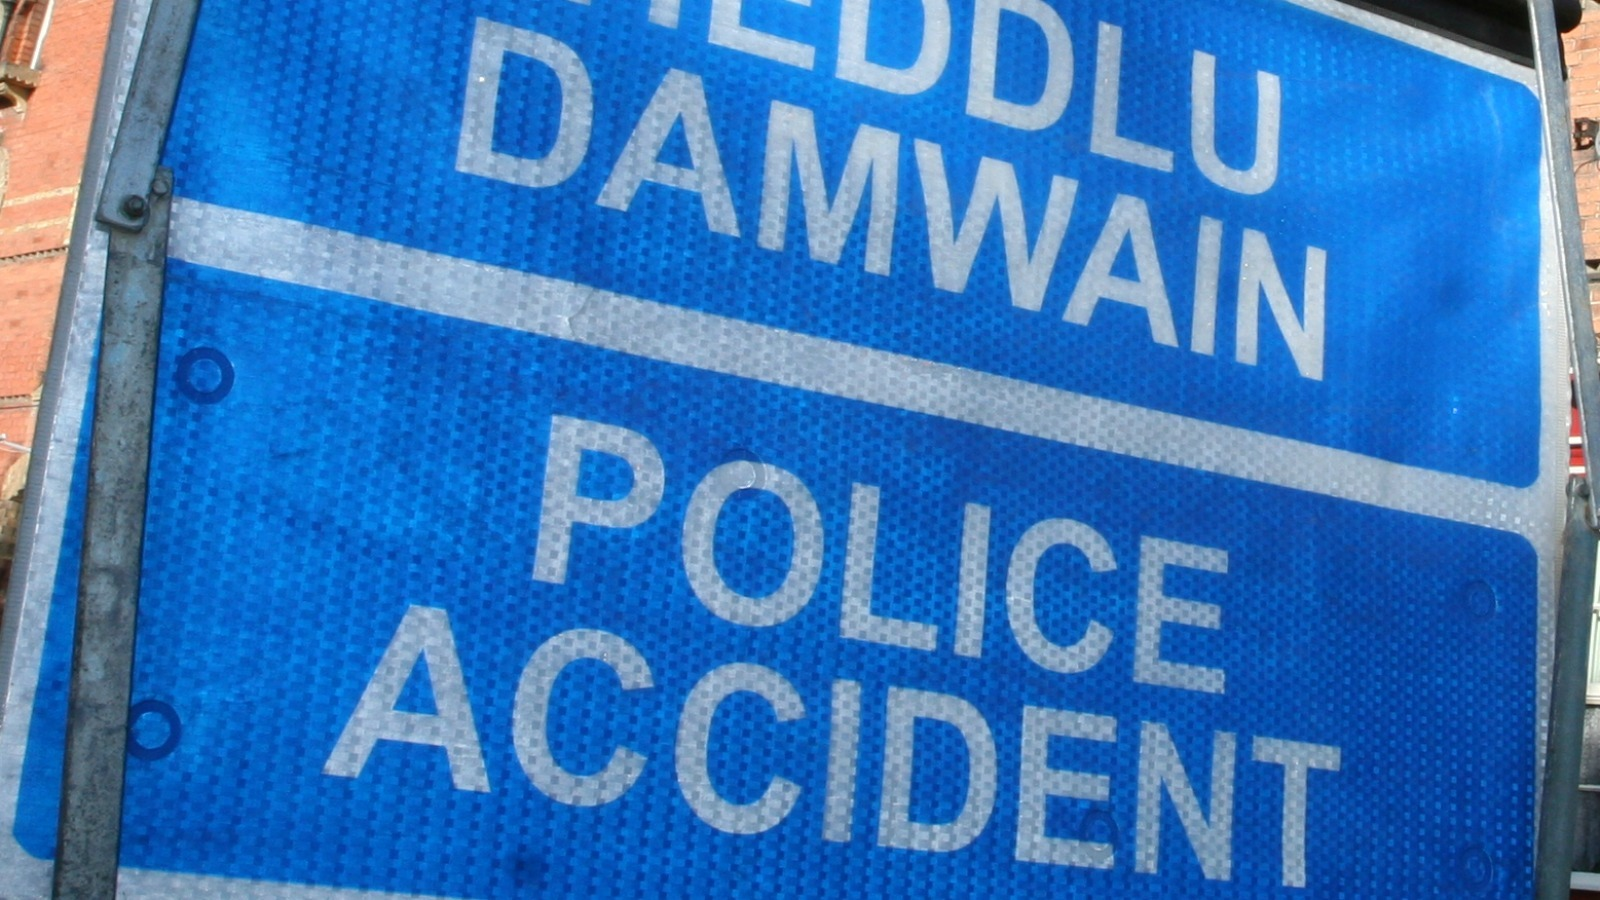 Library image of police 'accident' sign